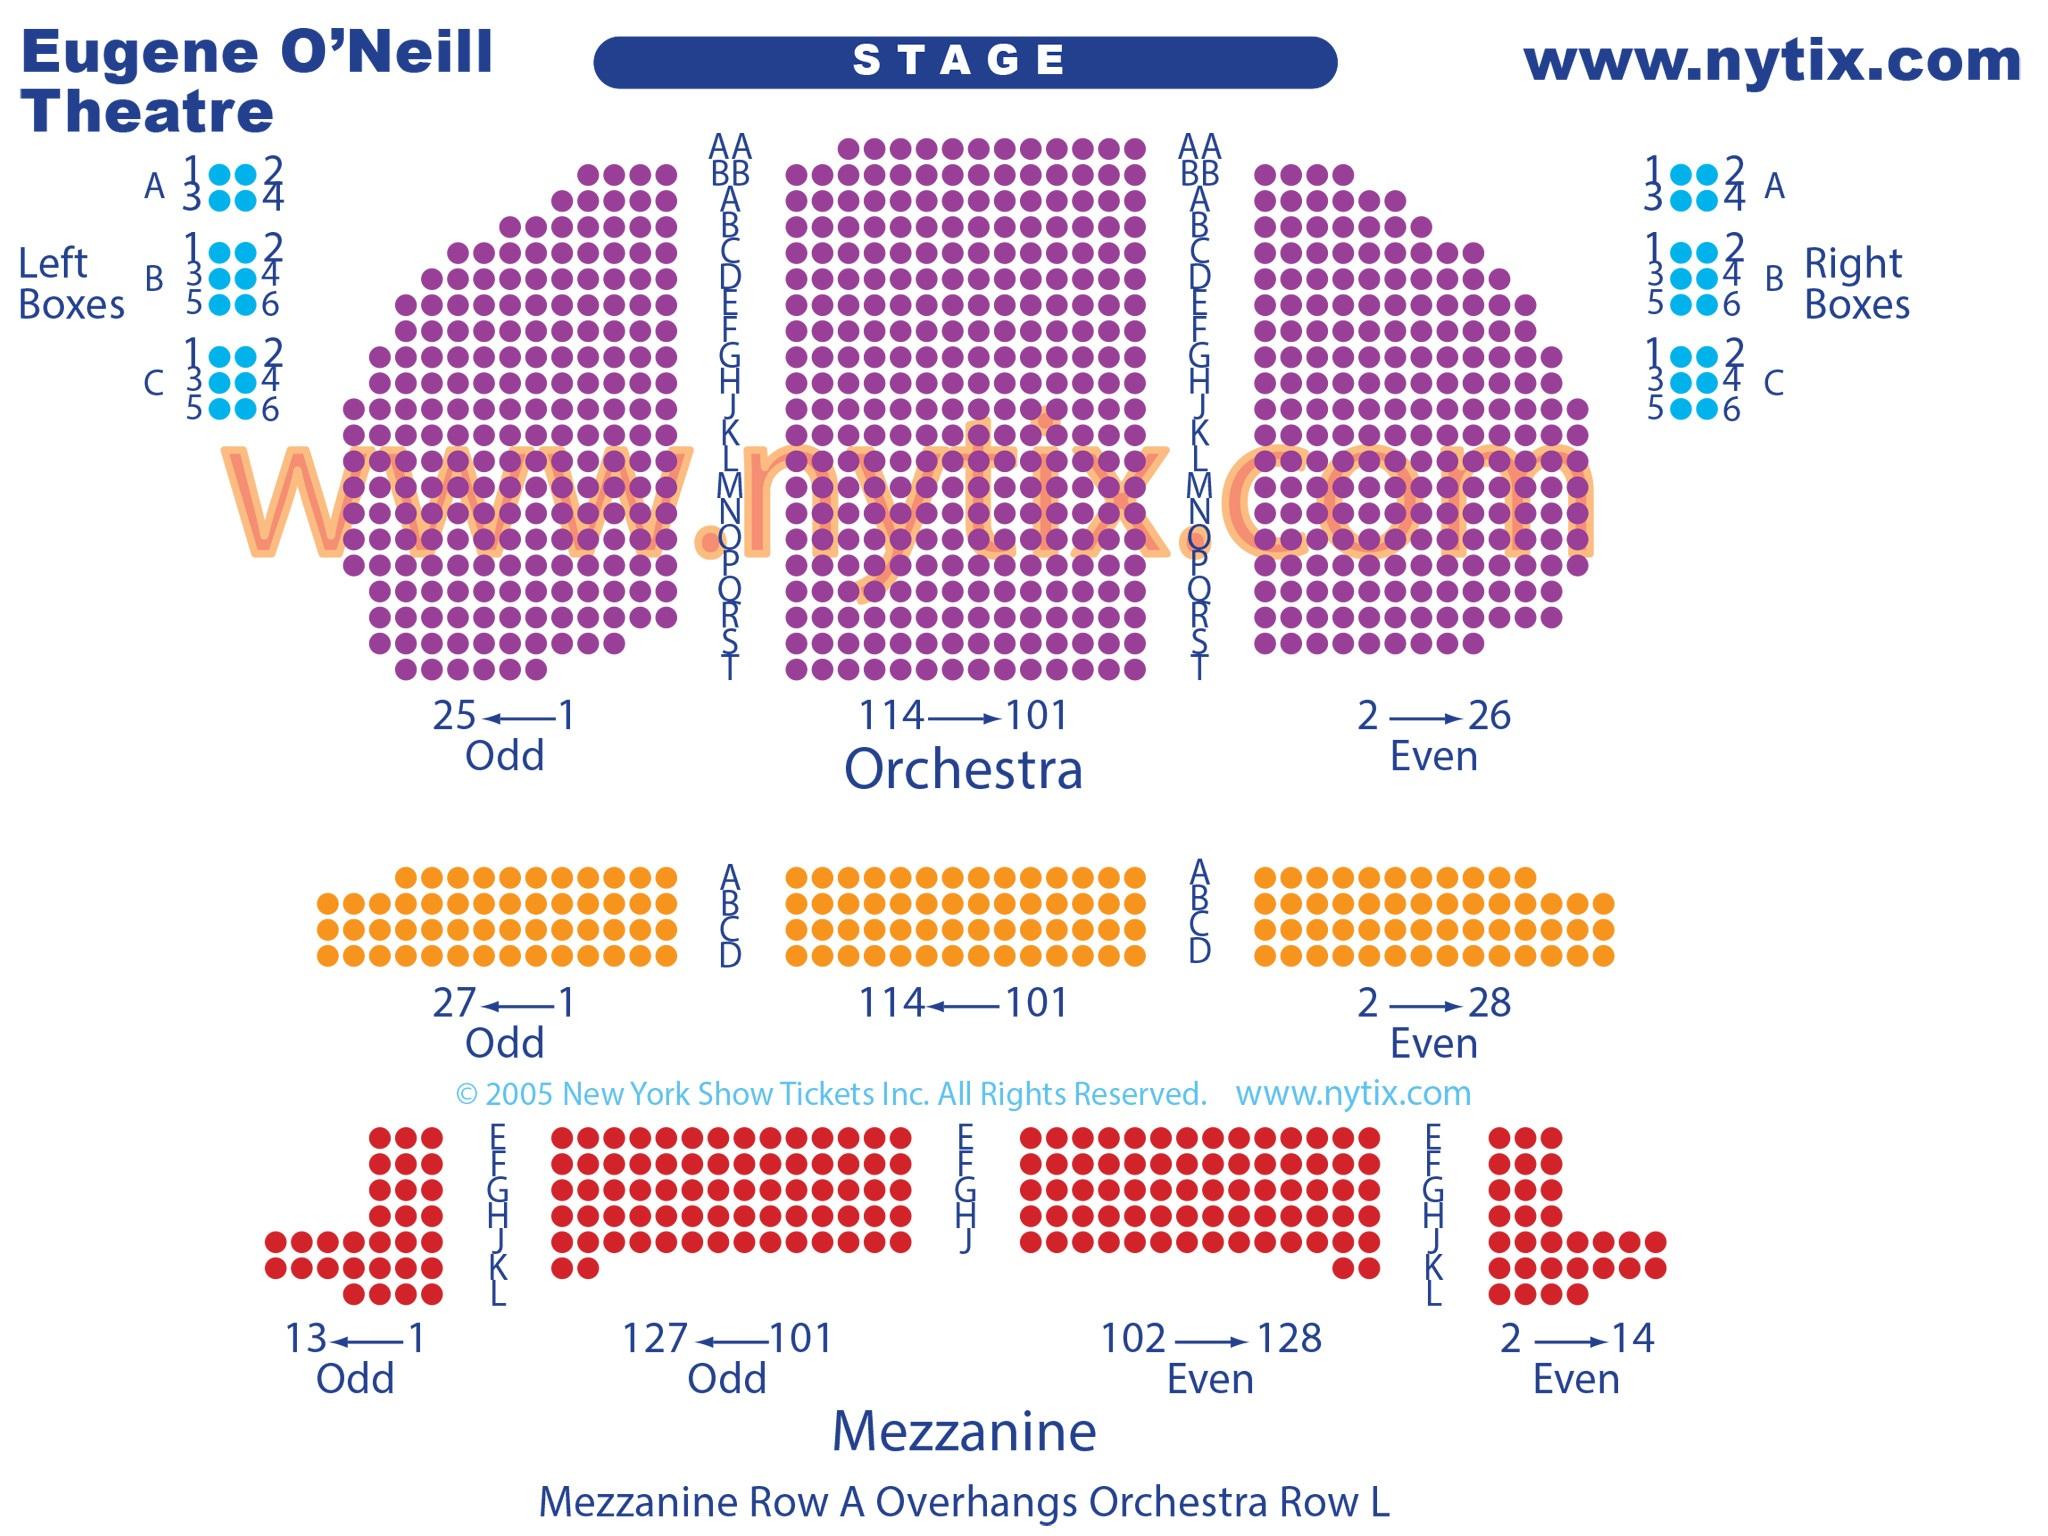 Eugene O'Neill Theatre Seating Chart